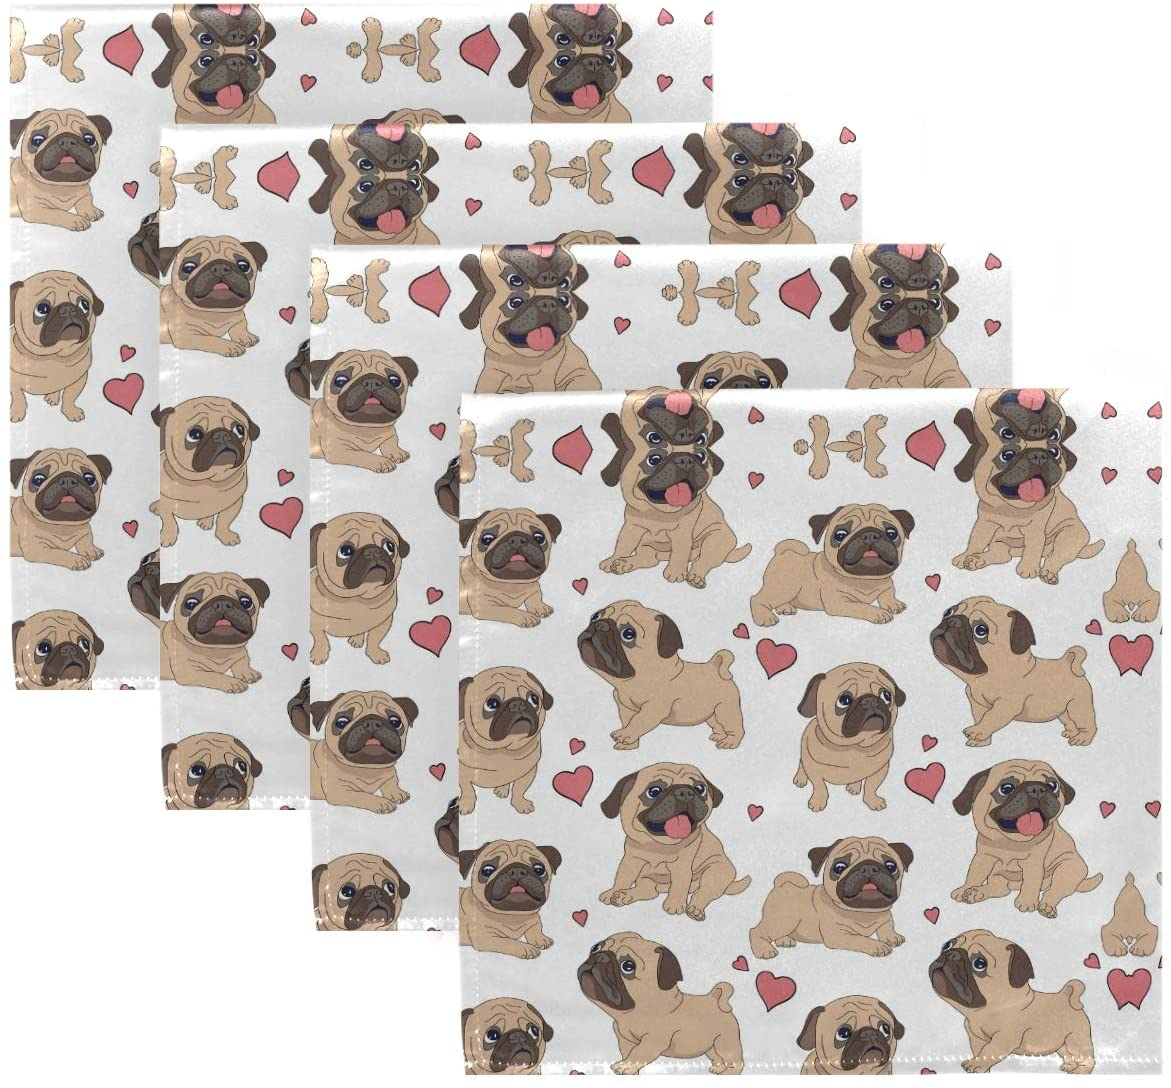 ALAZA Funny Cartoon Pugs Puppies Cloth Napkins Dinner Napkins Set of 4,Reusable Table Napkins Washable Polyester Fabric for Cocktail Party Holiday Wedding Home Decorative…